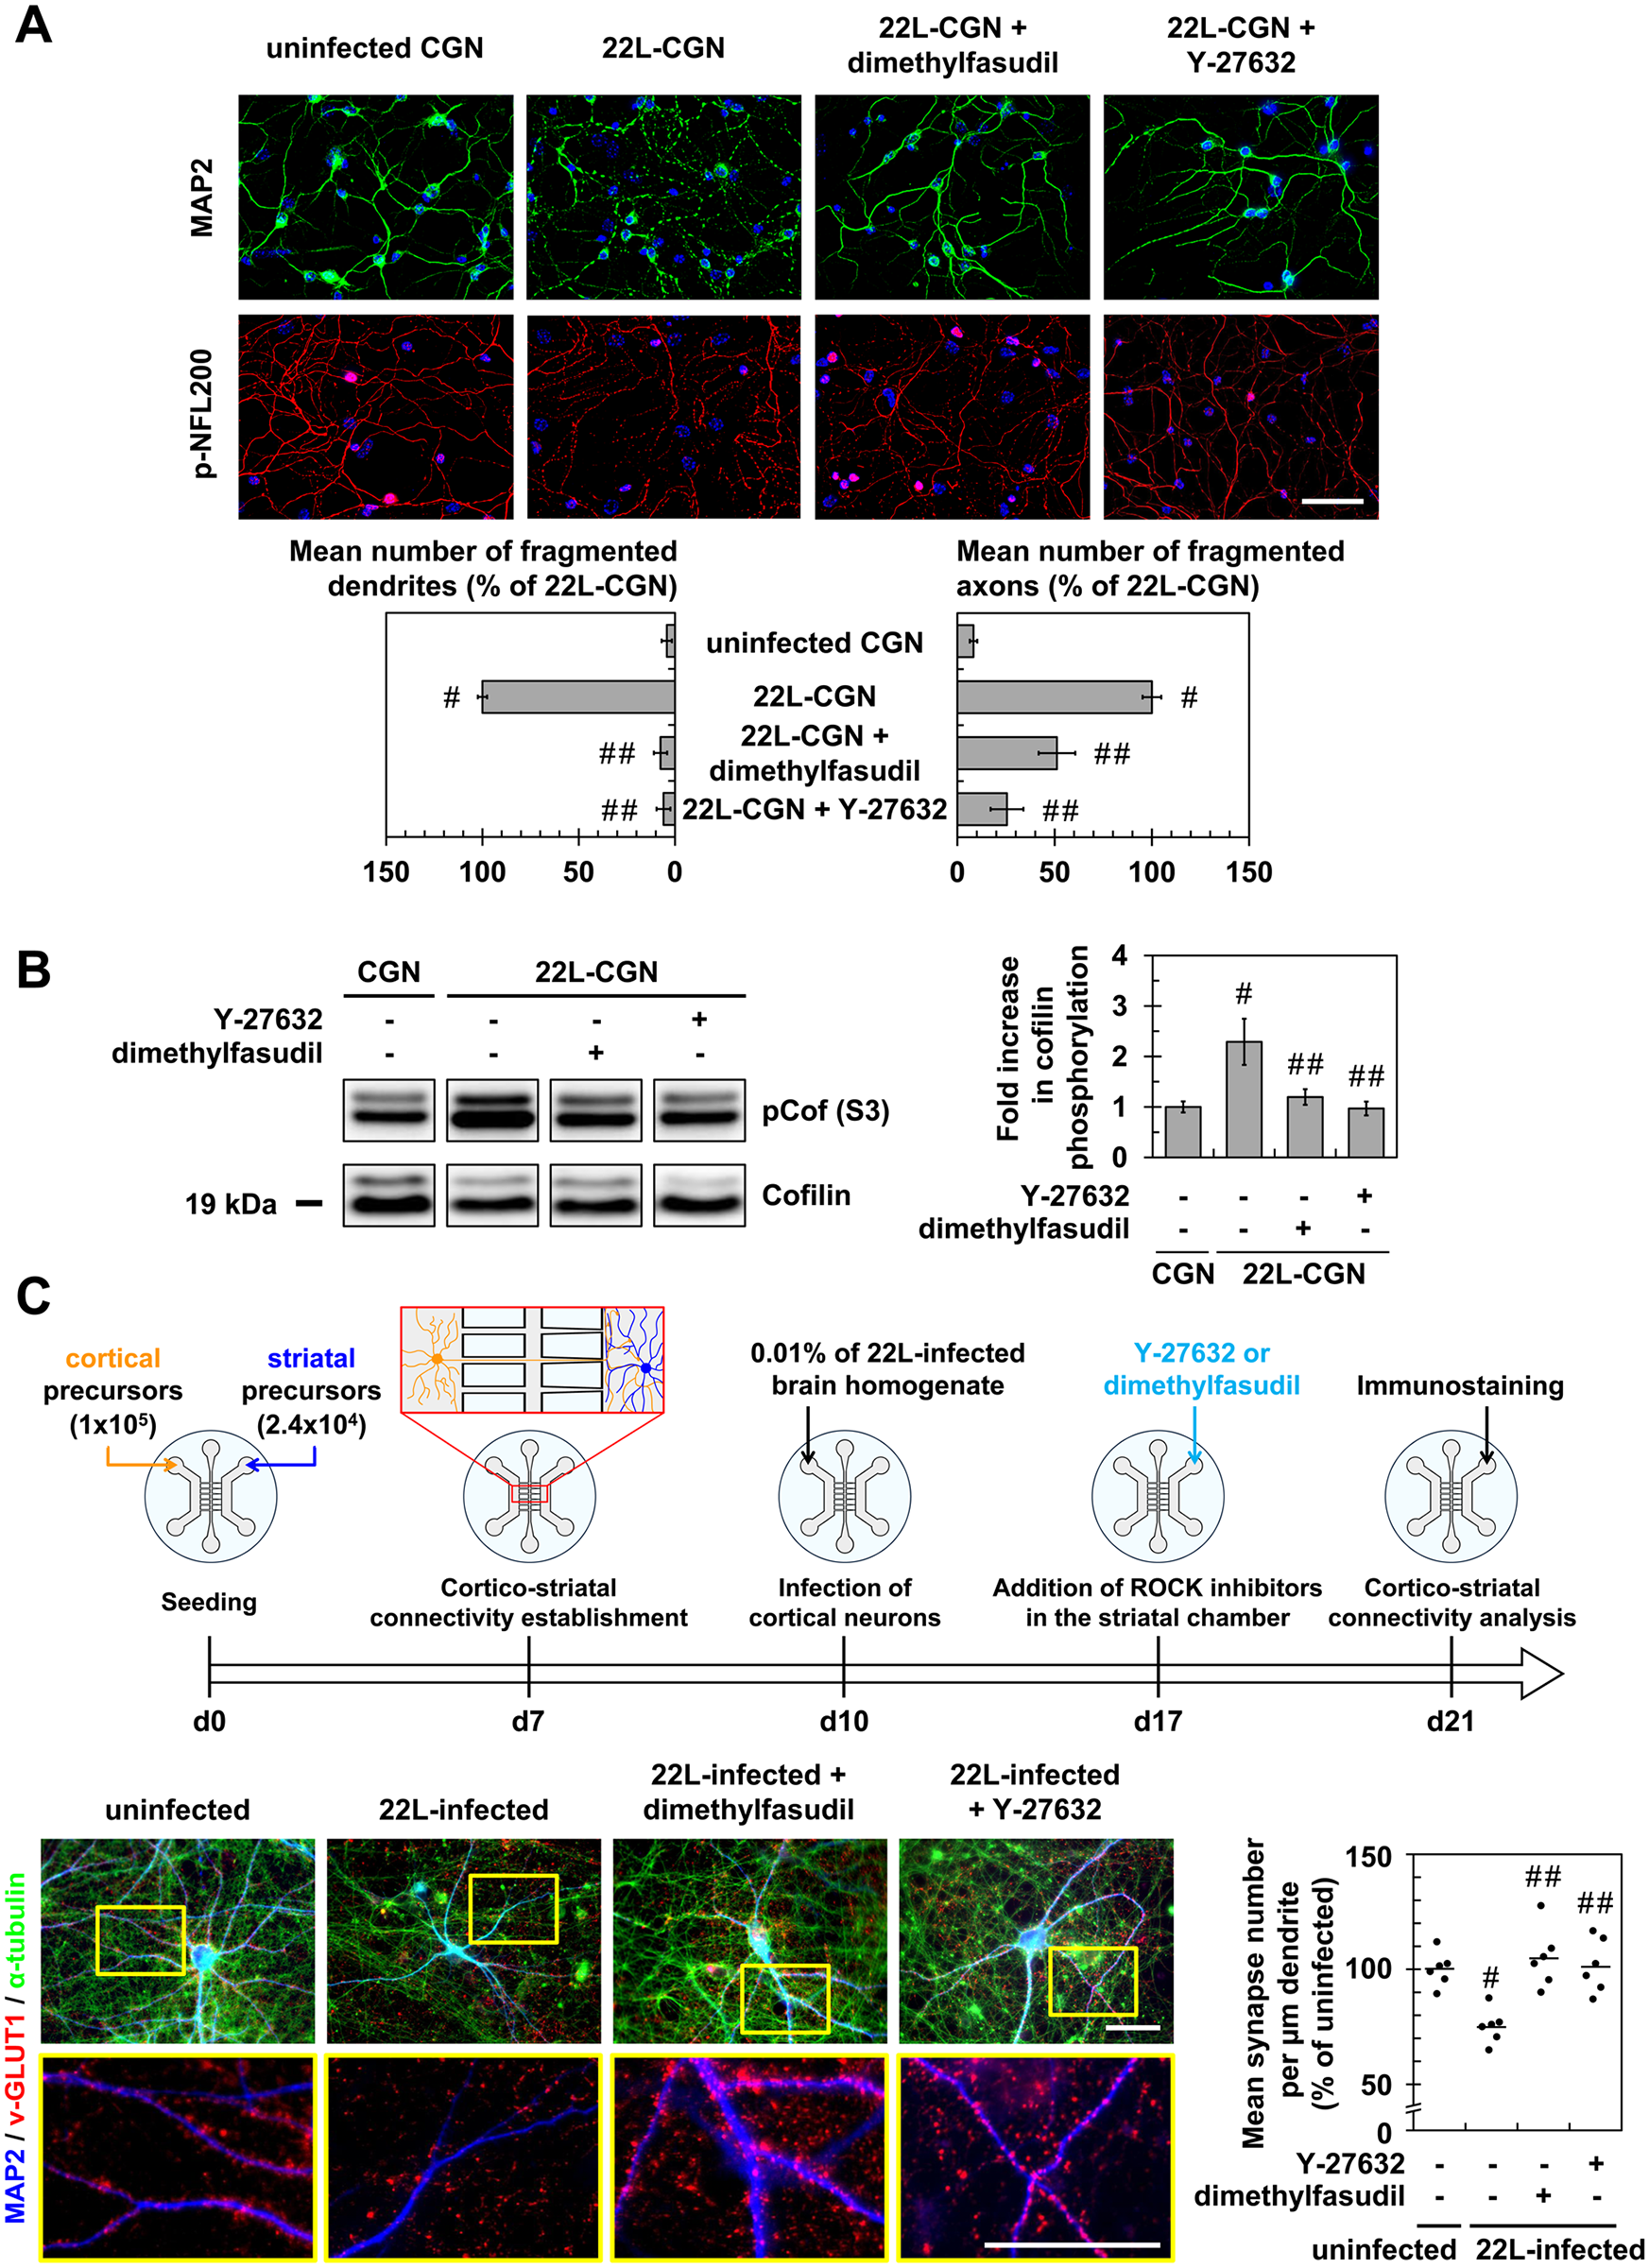 Inhibition of ROCK protects primary neuronal cultures from prion-induced synapse disconnection and neurite degradation.